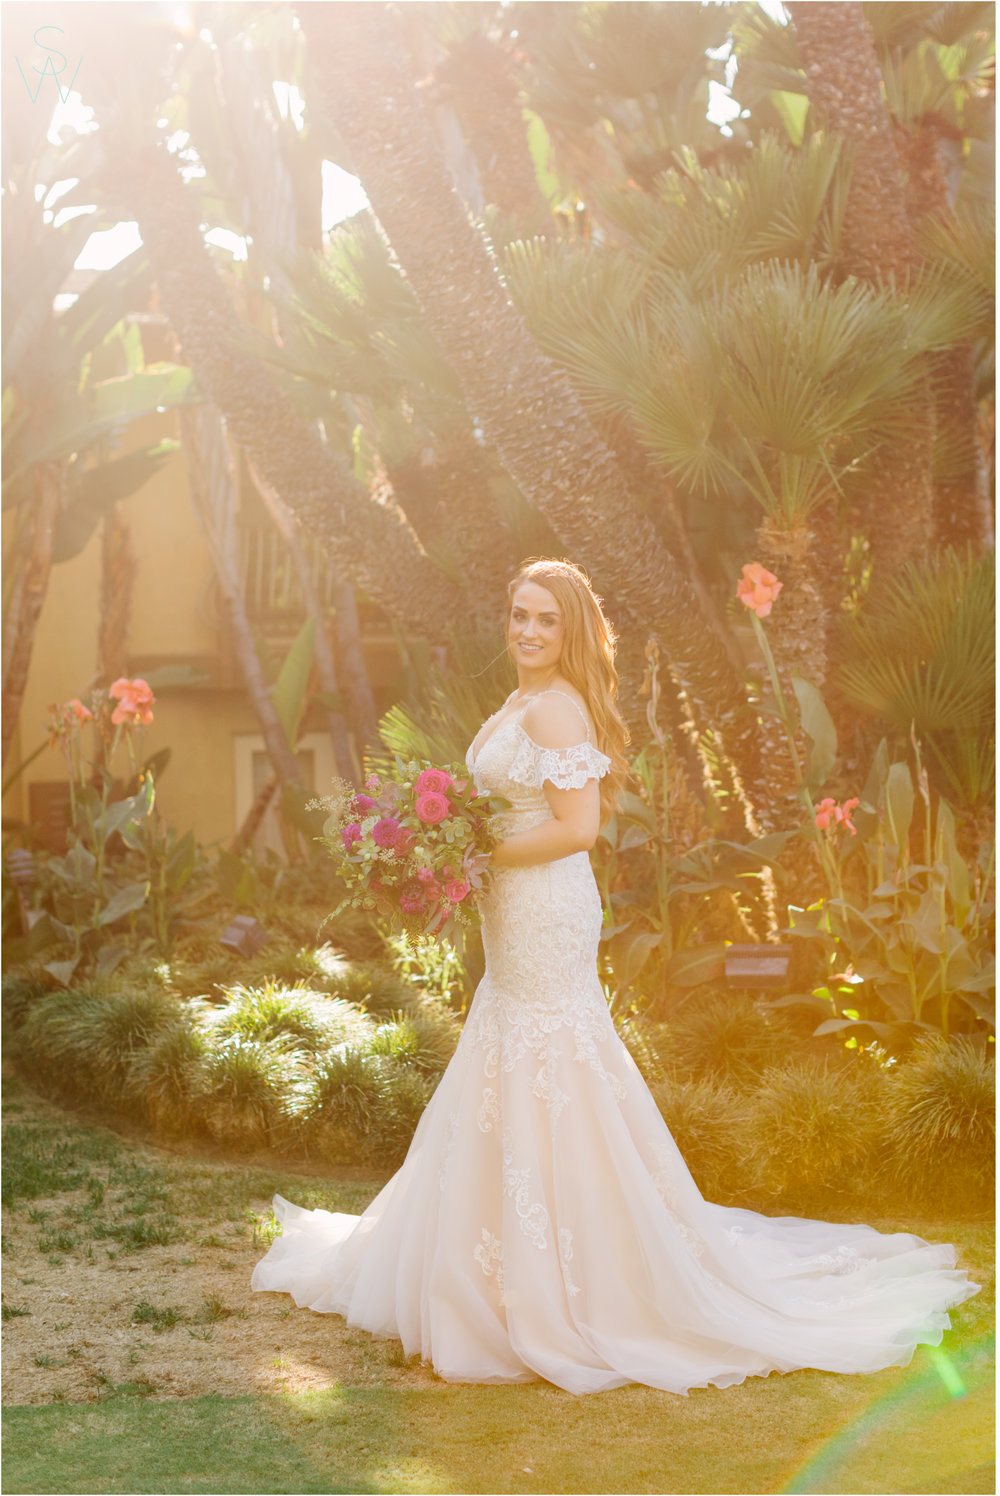 109San.diego.wedding.shewanders.photography.JPG